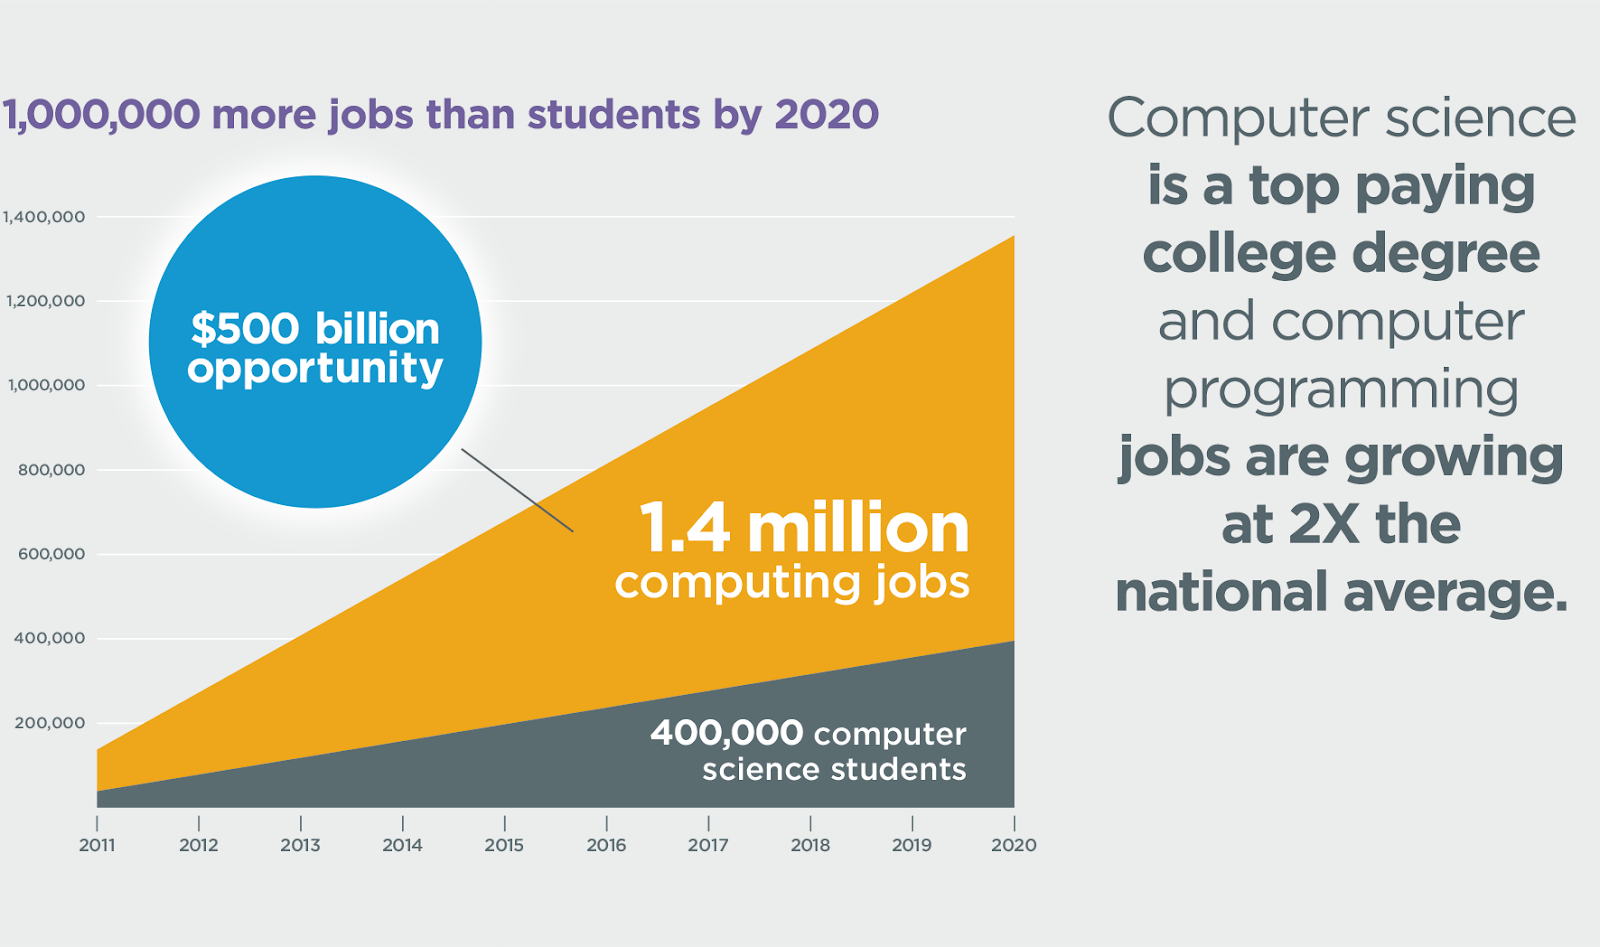 Teaching kids to code is important for these job opportunities.